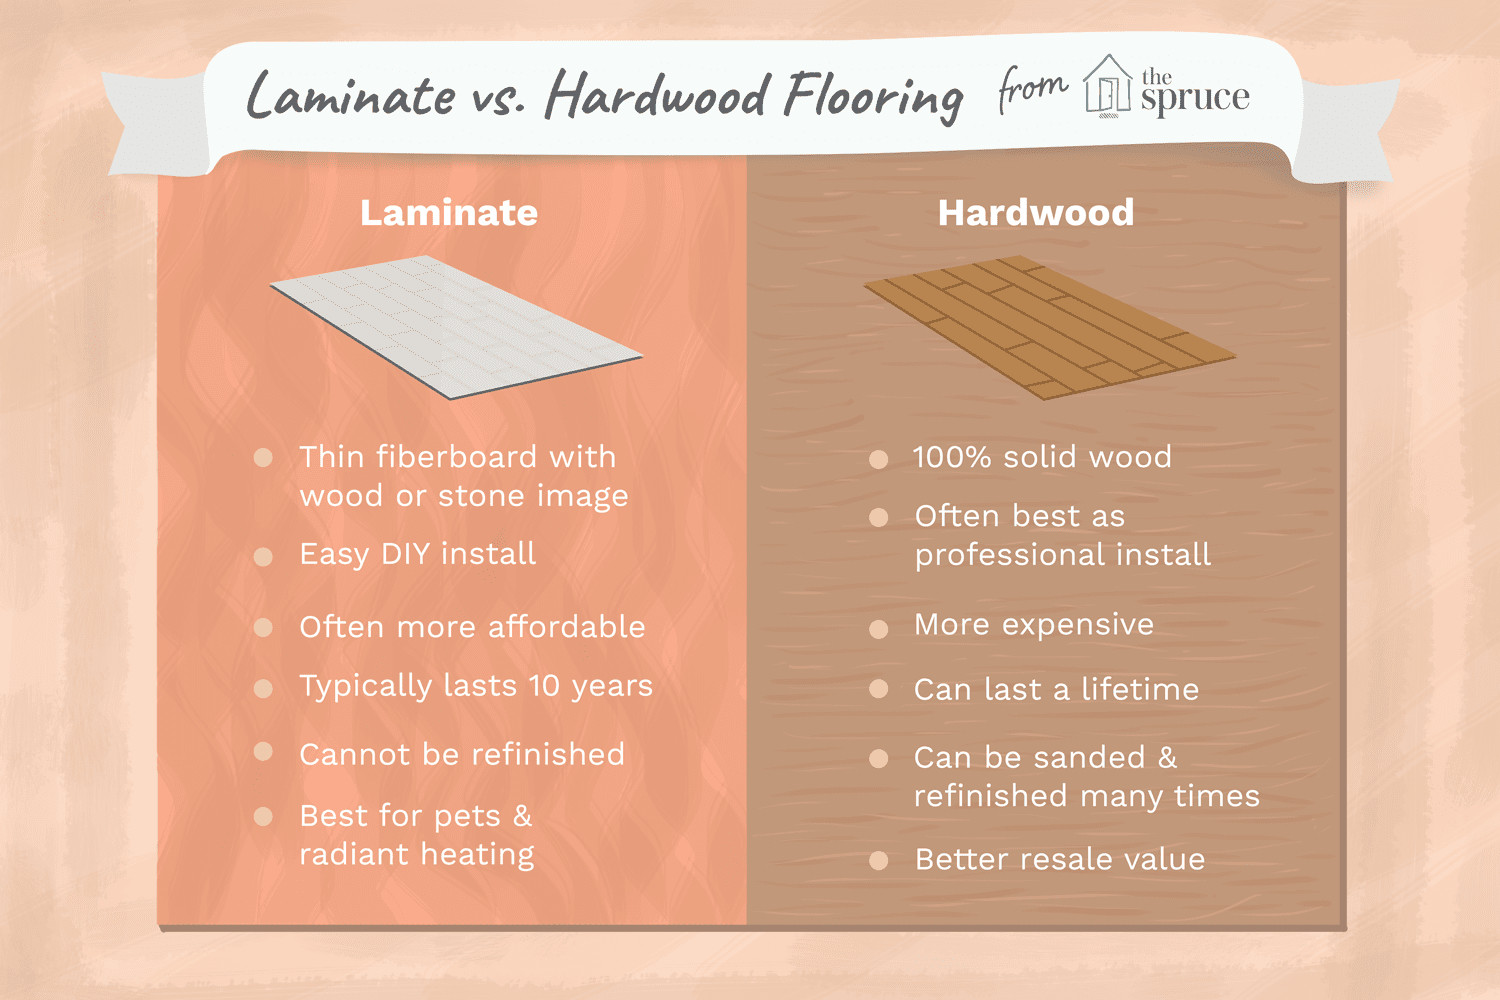 gew hardwood flooring of laminate vs hardwood doesnt have to be a hard decision with hardwood doesnt have to be a hard decision